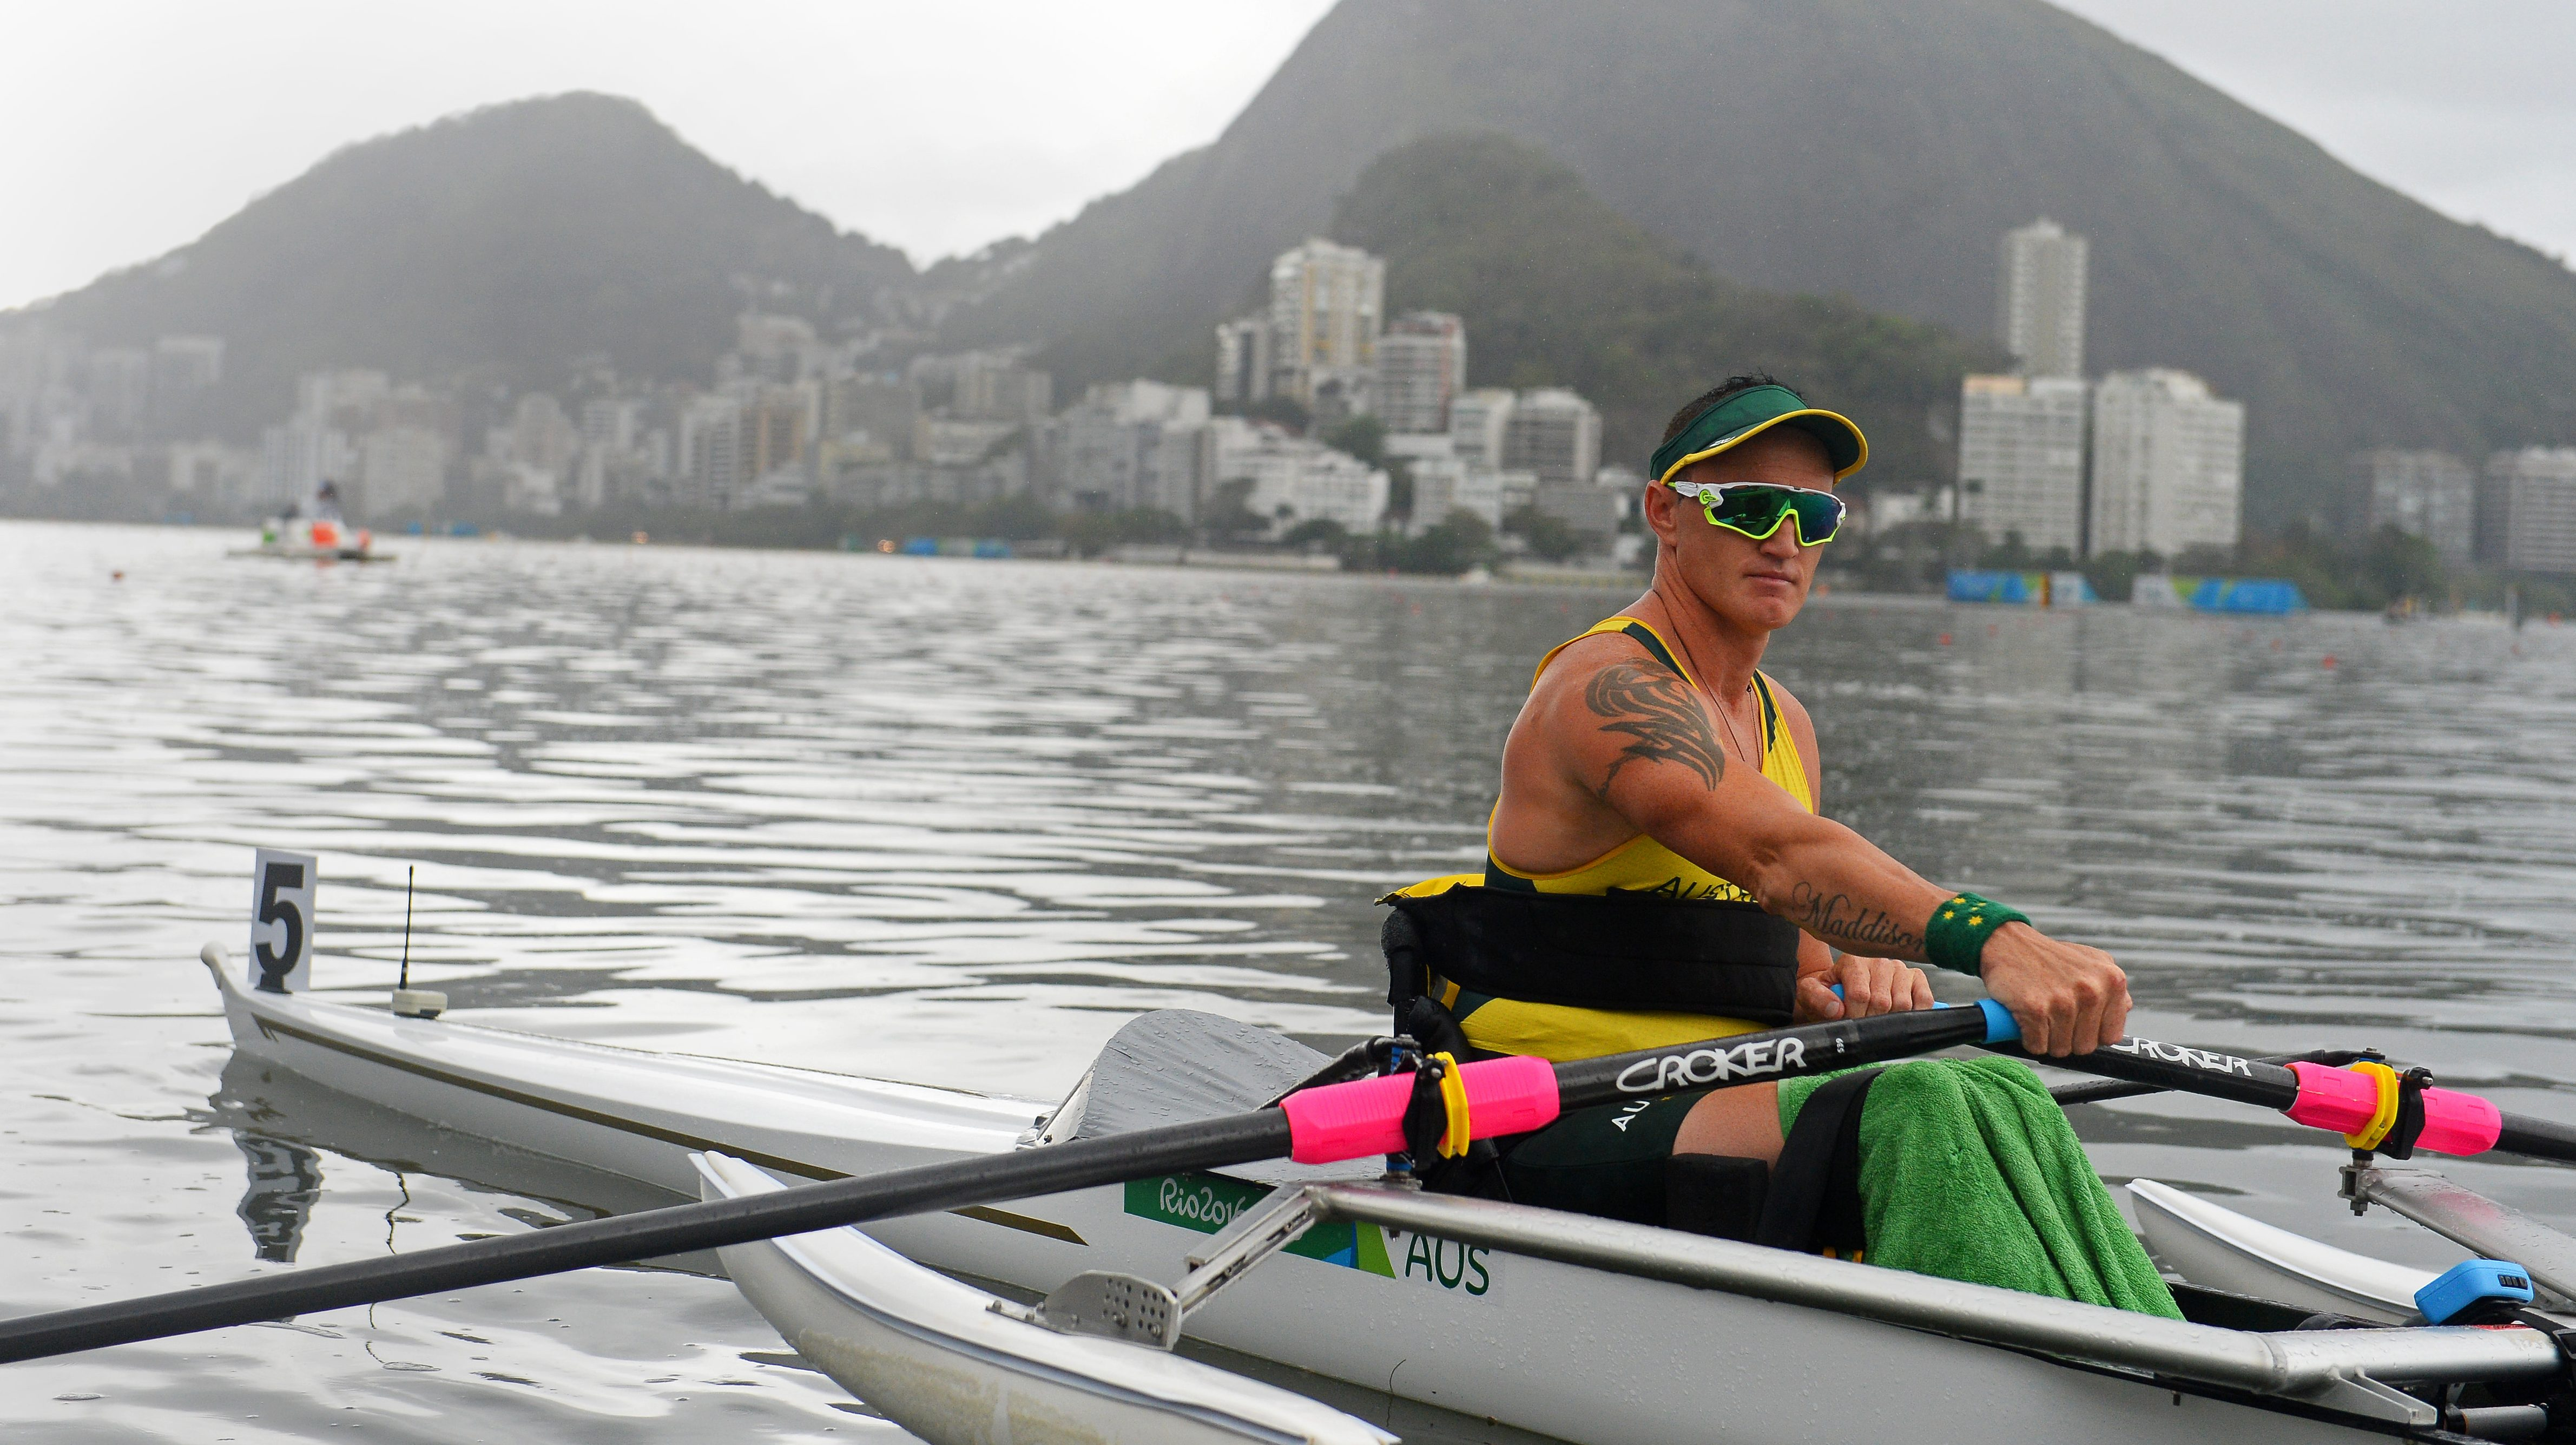 Horrie selected early for 2018 World Rowing Championships